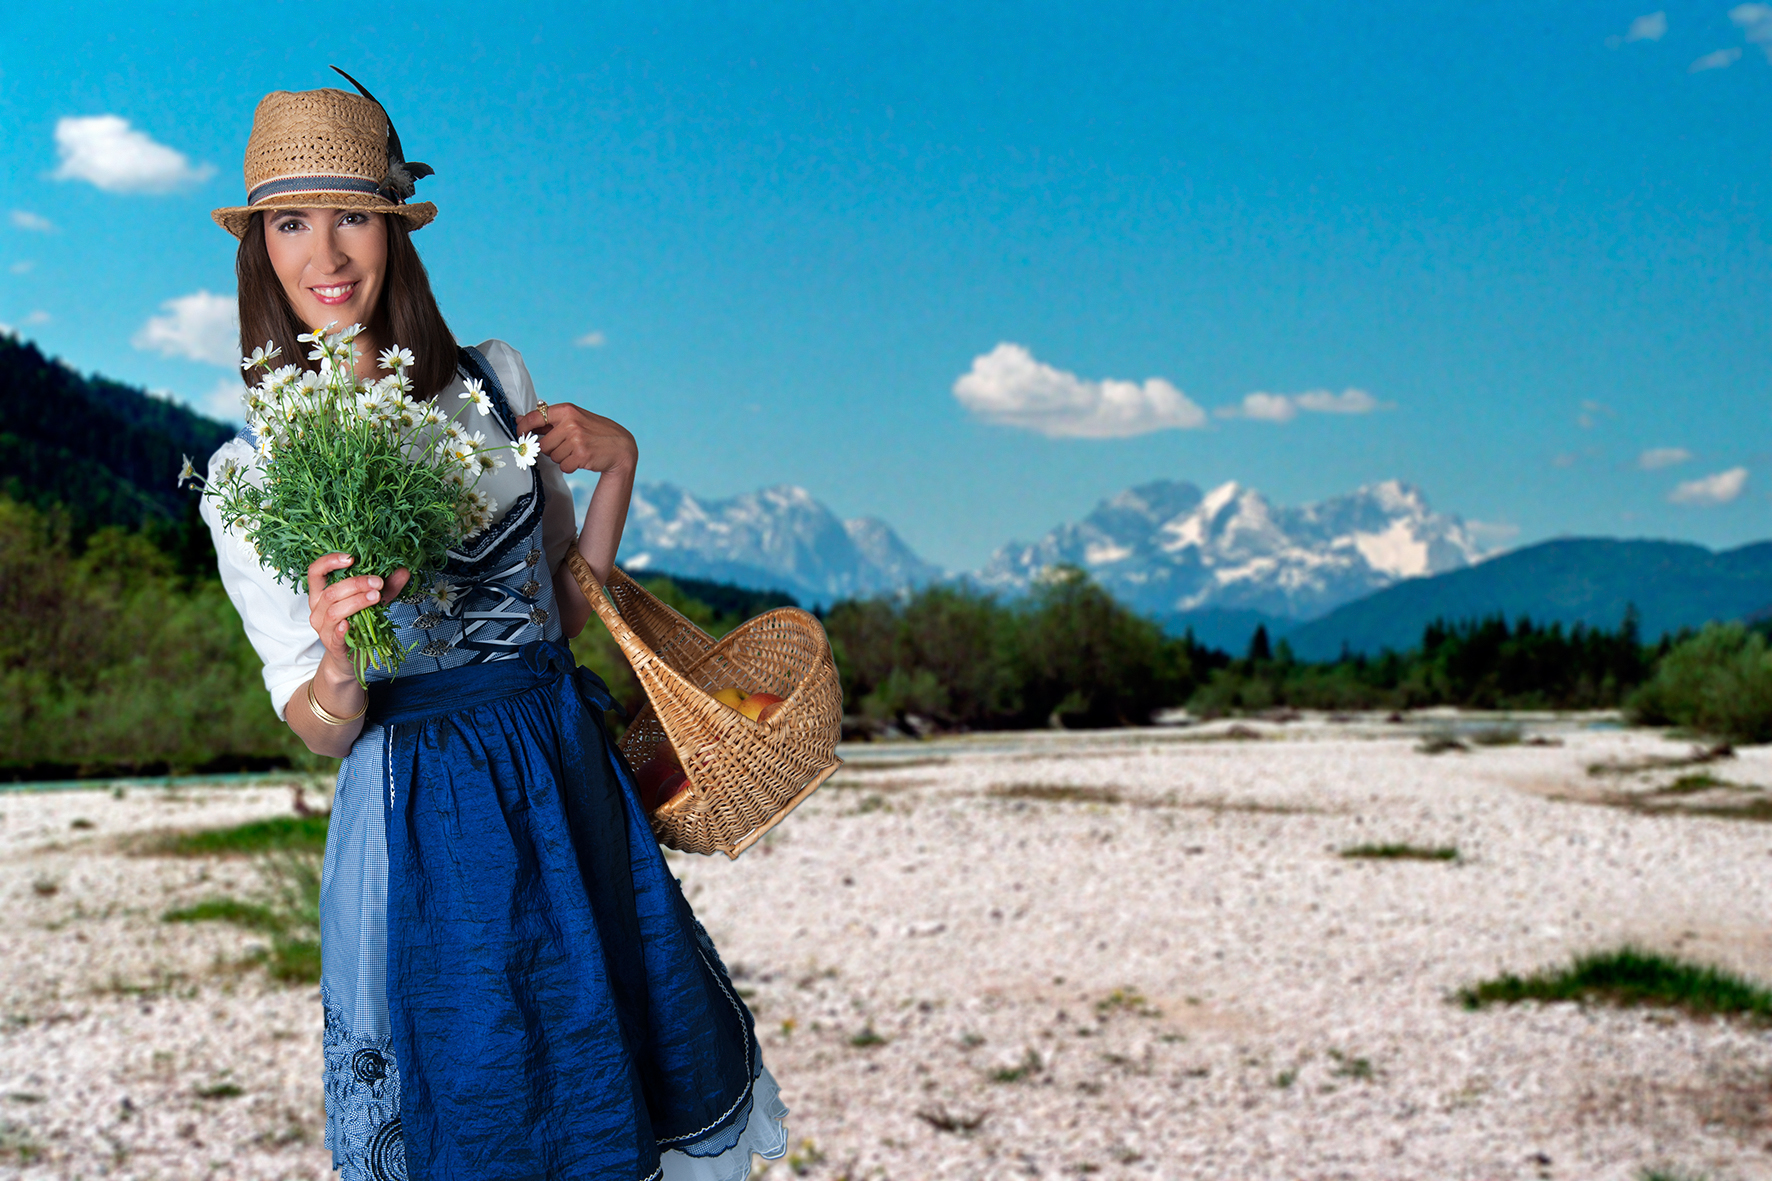 Fashionable_young_woman_posing_in_bavarian_dress_with_flowers_in_bavarian_landscape_by_studioblom.de